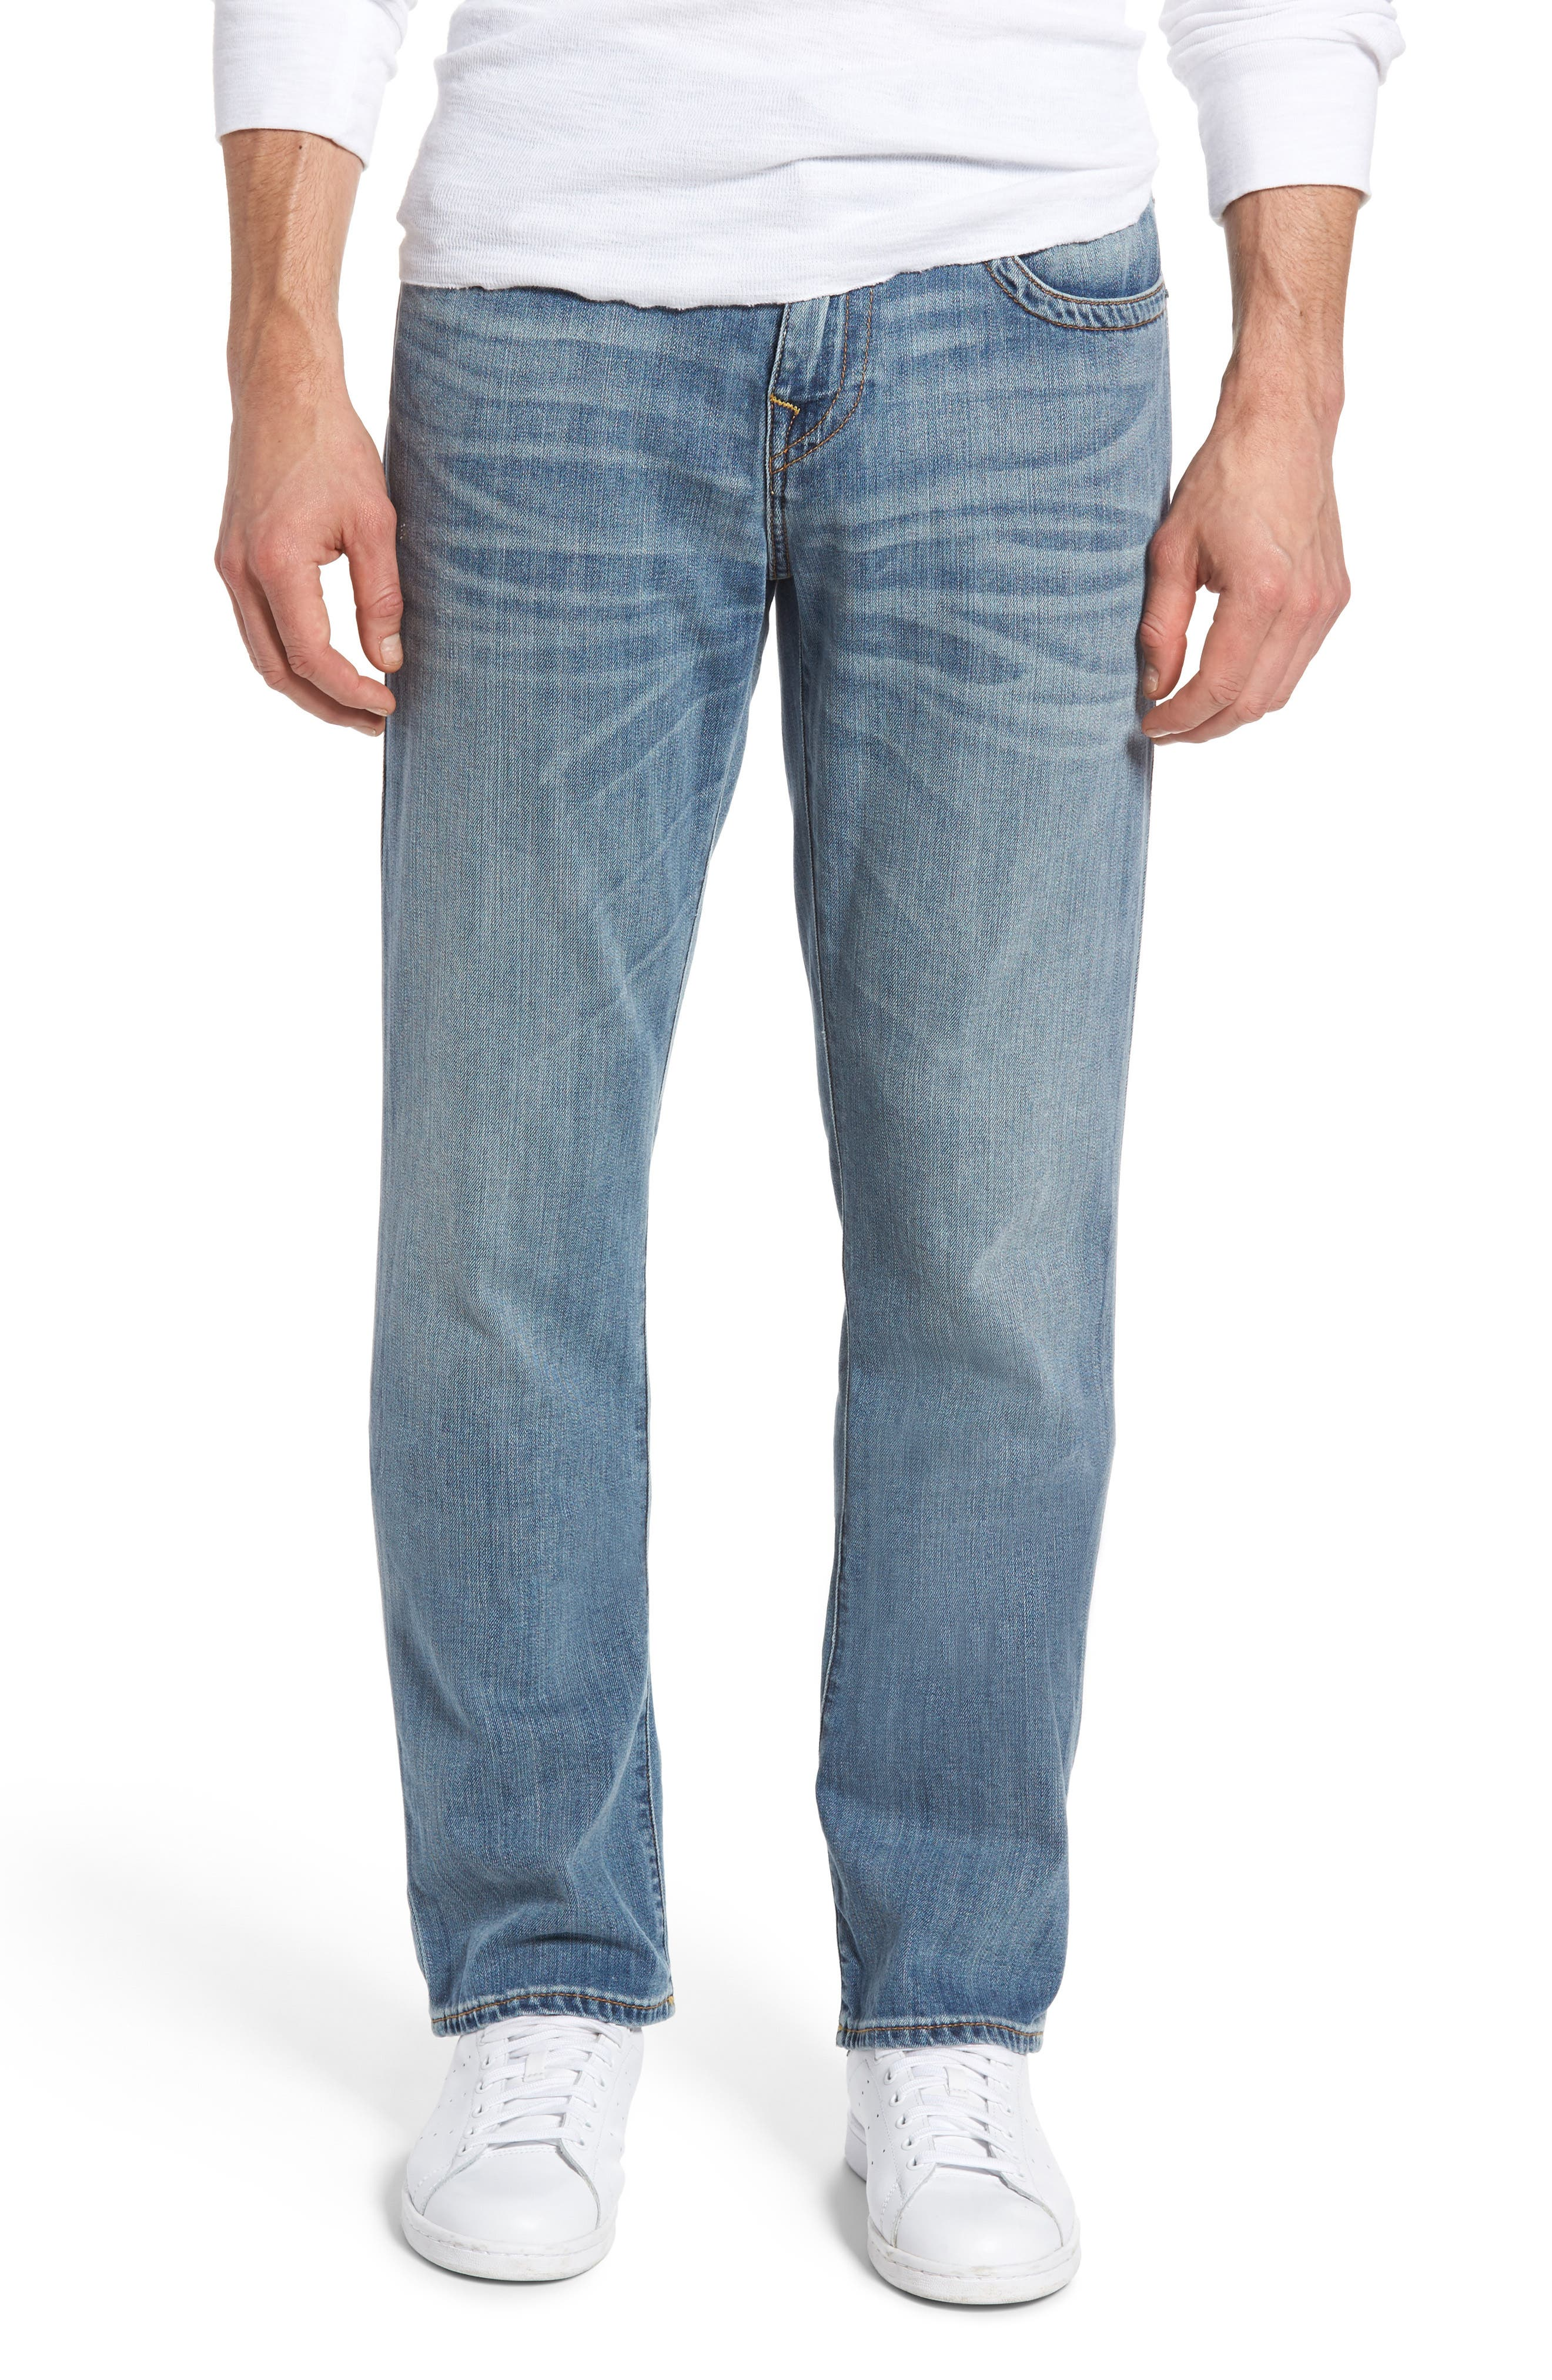 True Religion Brand Jeans Ricky Relaxed Fit Jeans (Caravan)